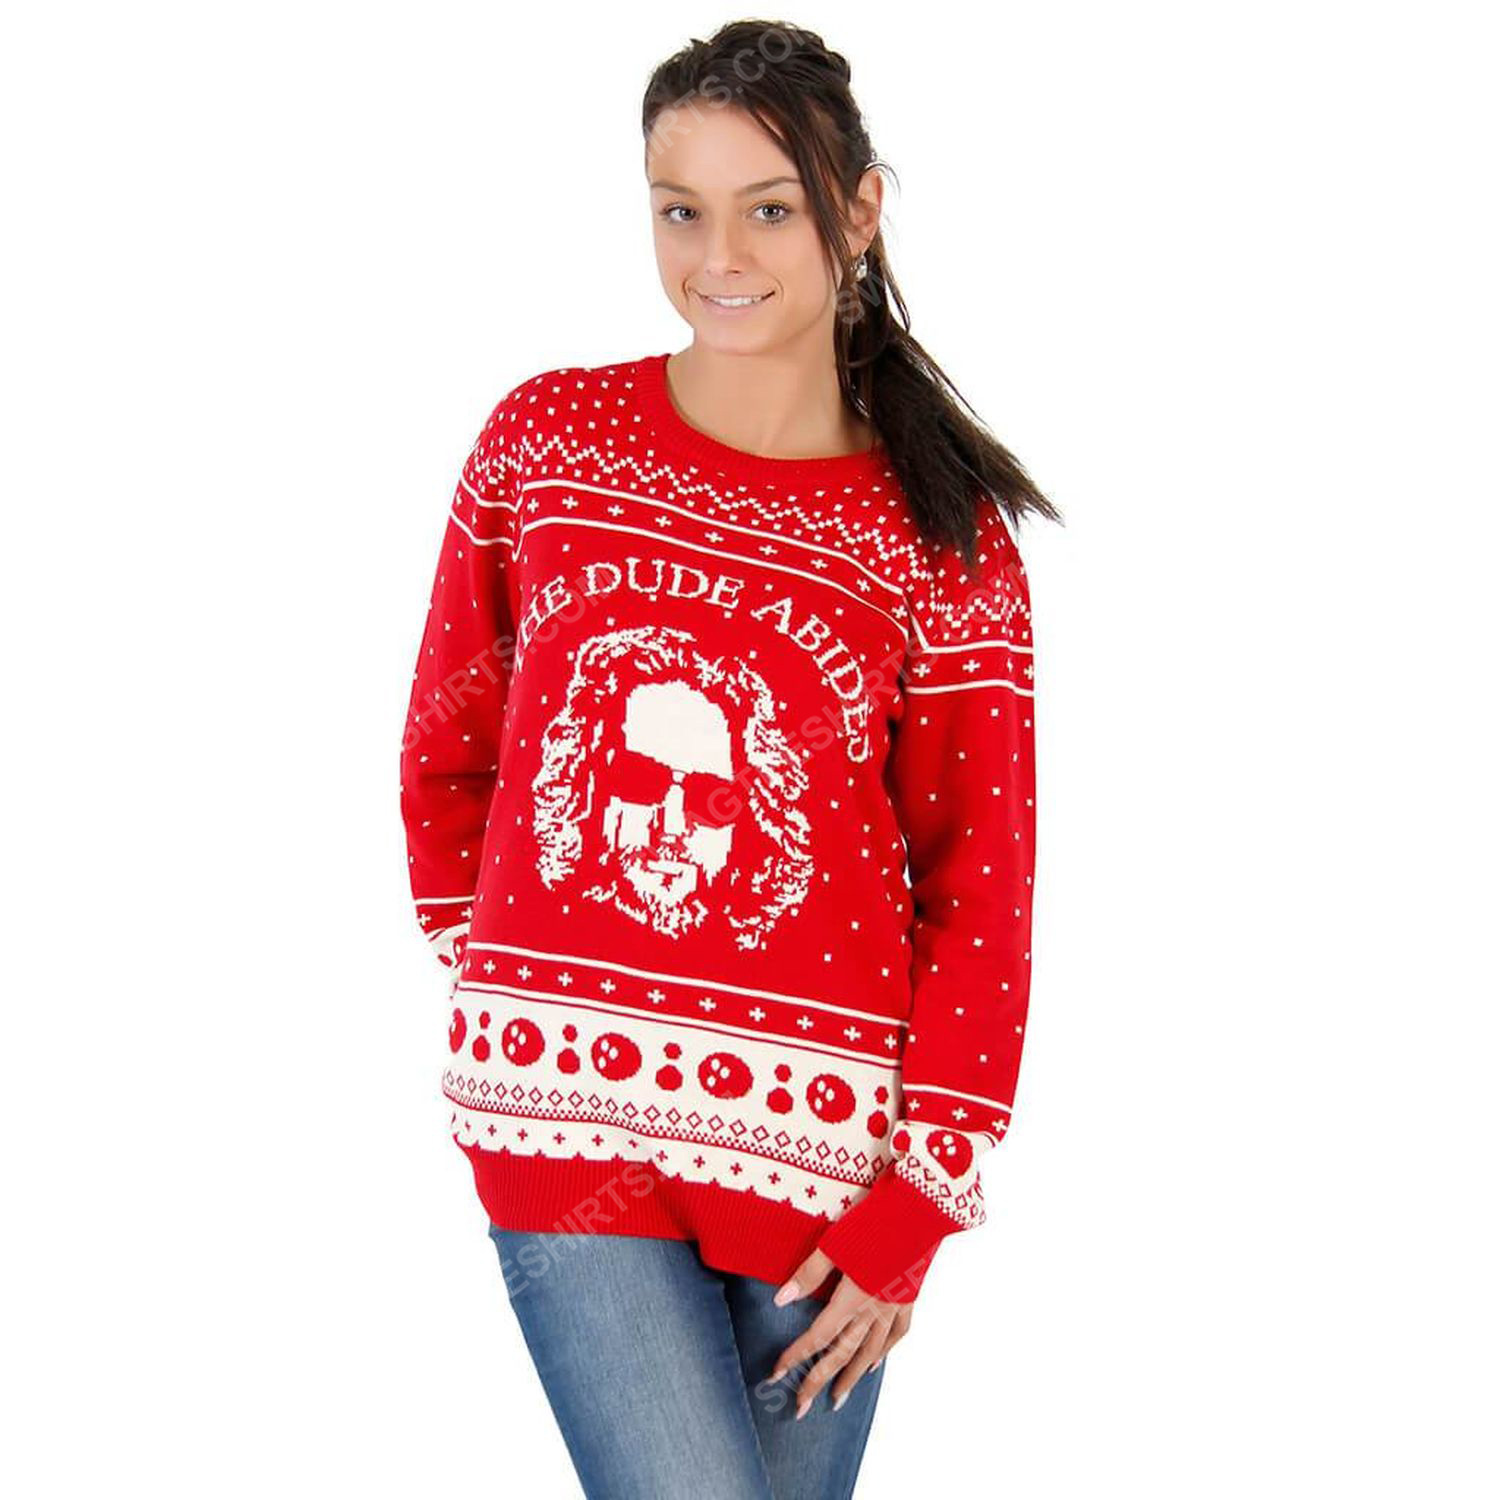 The big lebowski the dude abides full print ugly christmas sweater 2 - Copy